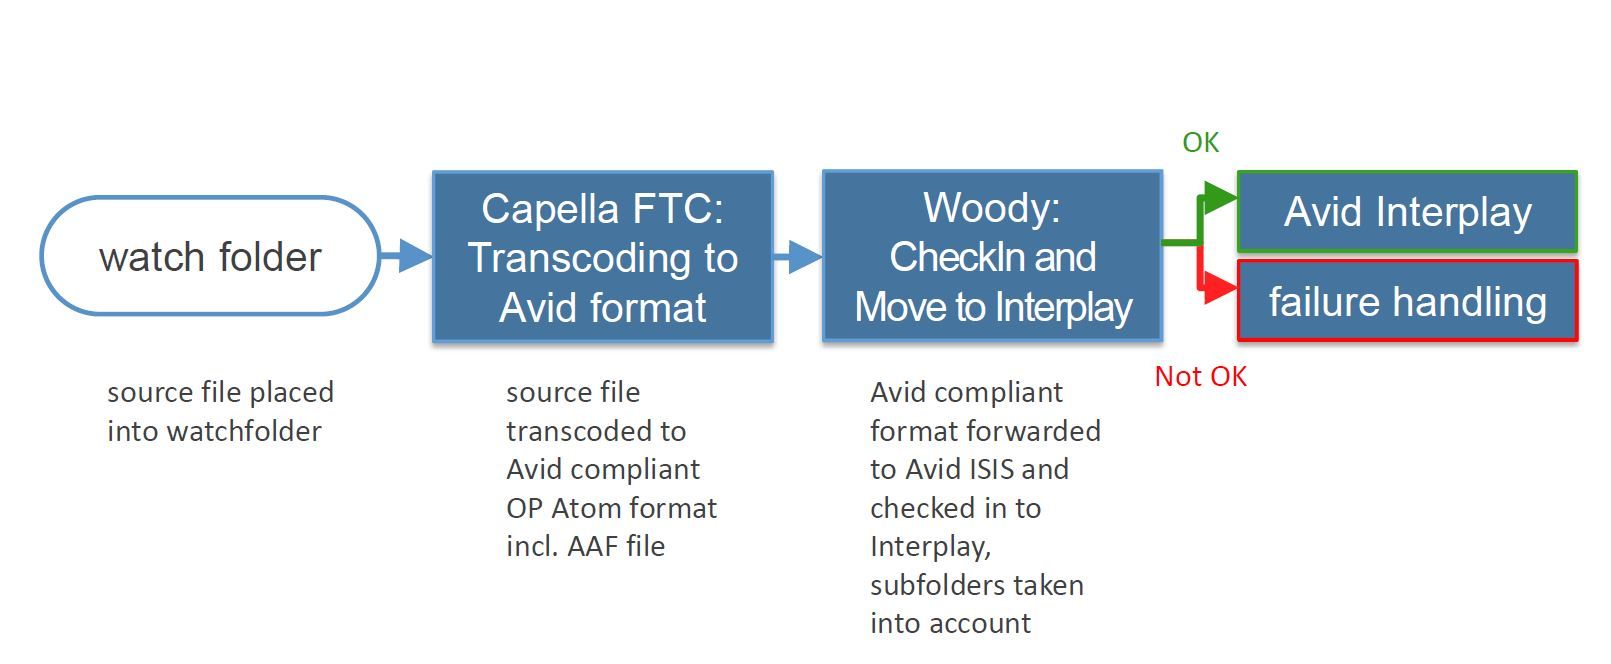 Capella and Woody (into AVID)